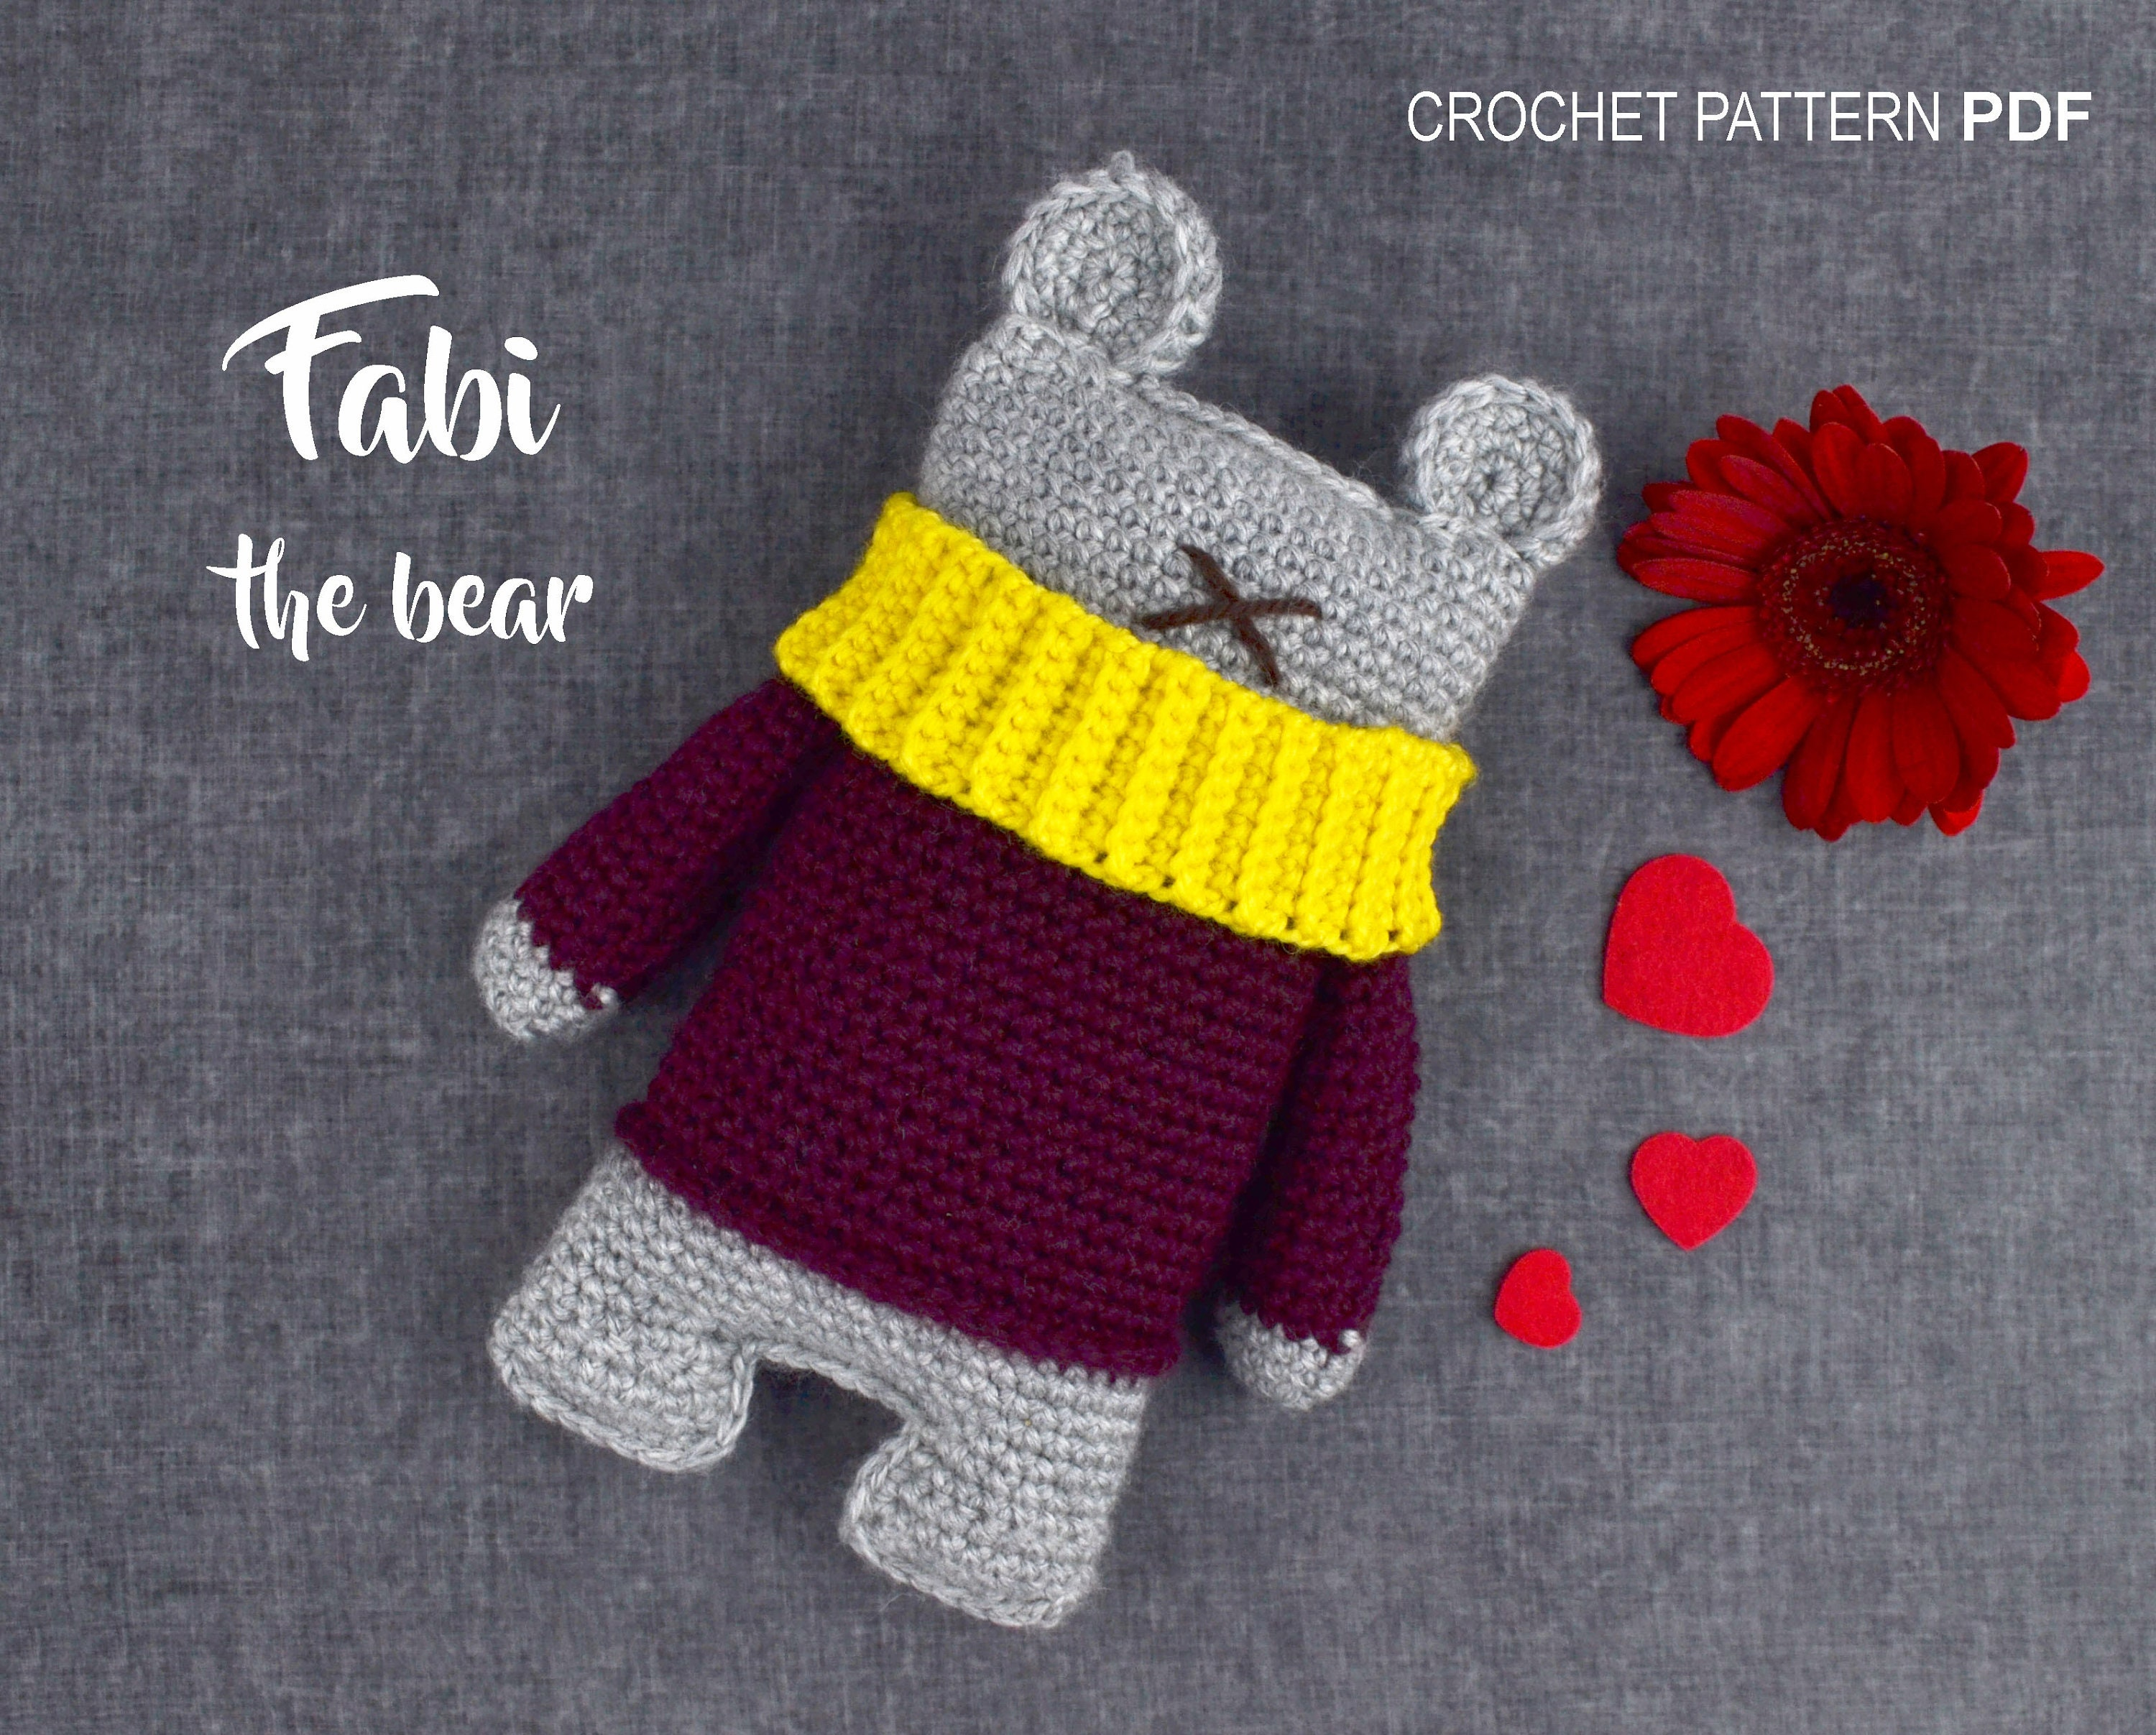 Crochet Pattern Pdf Amigurumi Fabi The Bear Garbi Artstudio Etsy Wrist Red Zoom